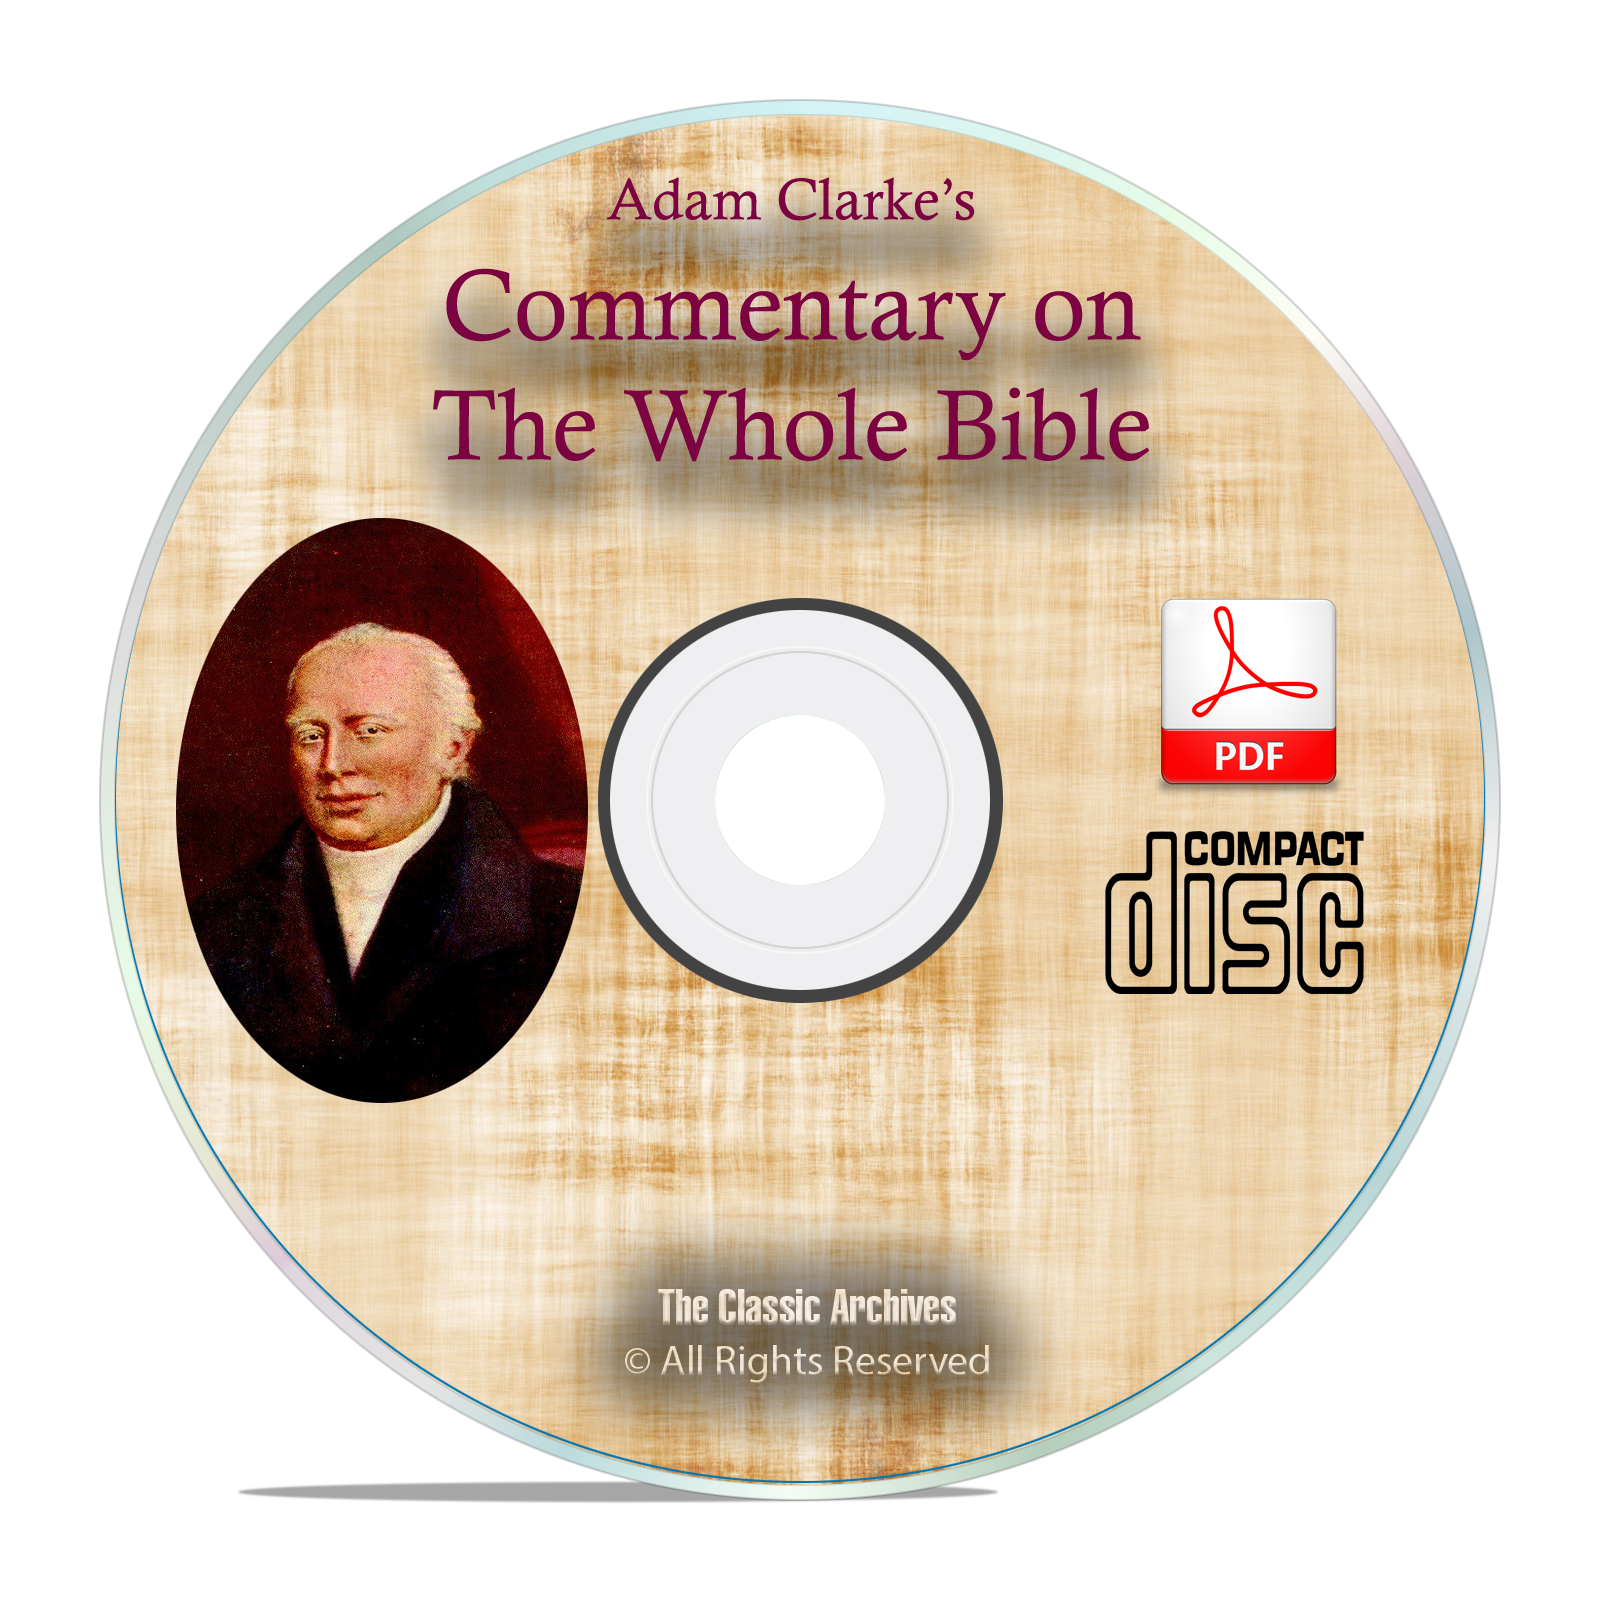 Adam Clarke's Commentary on Whole Bible, Christian Scripture Study PDF CD